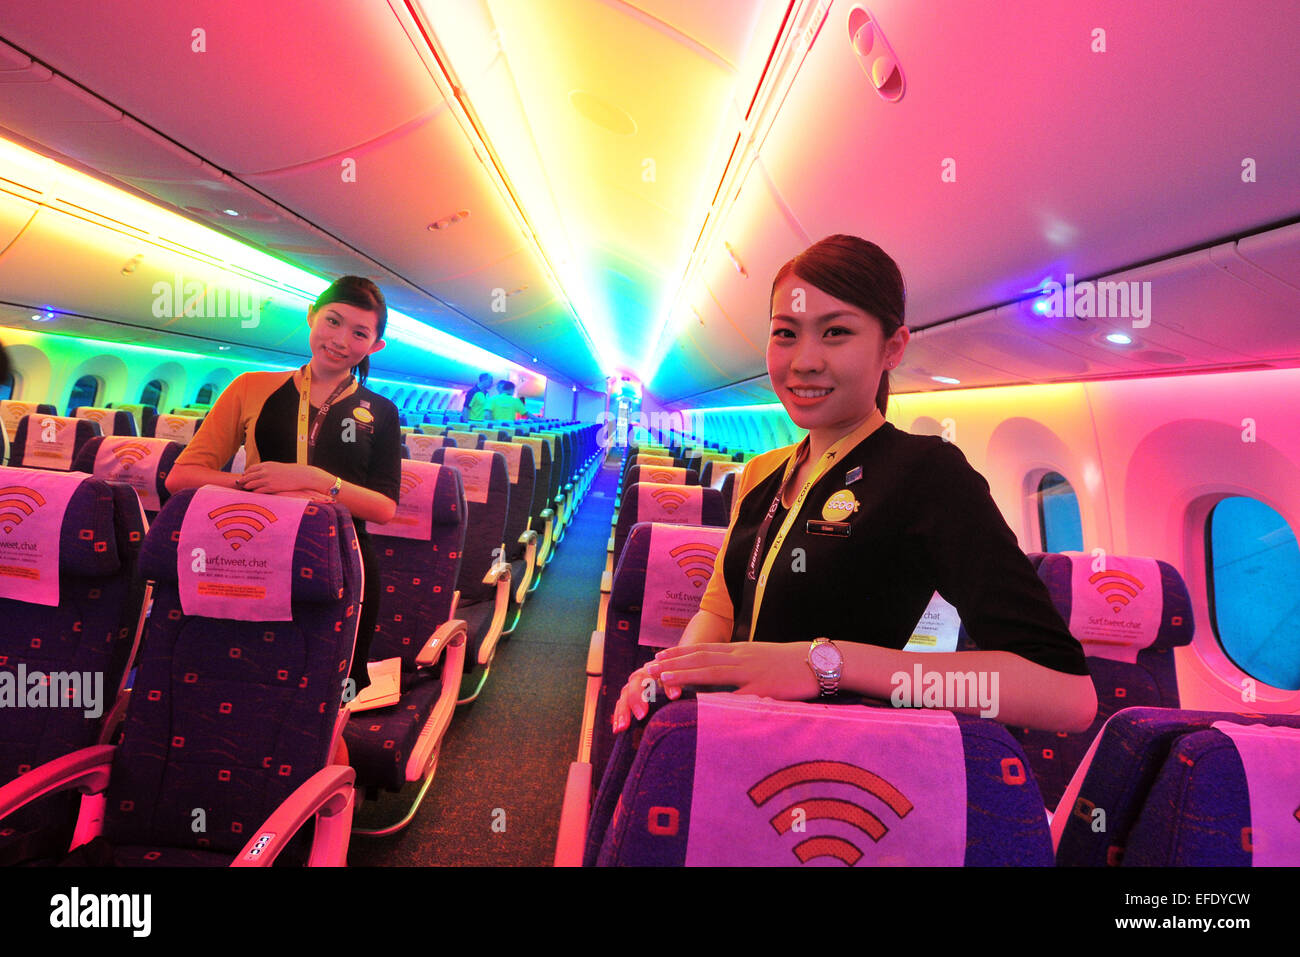 Singapore. 2nd Feb, 2015. Singapore's Scoot cabin crew welcome guests on the 'Dream Start' Boeing B787 - Stock Image